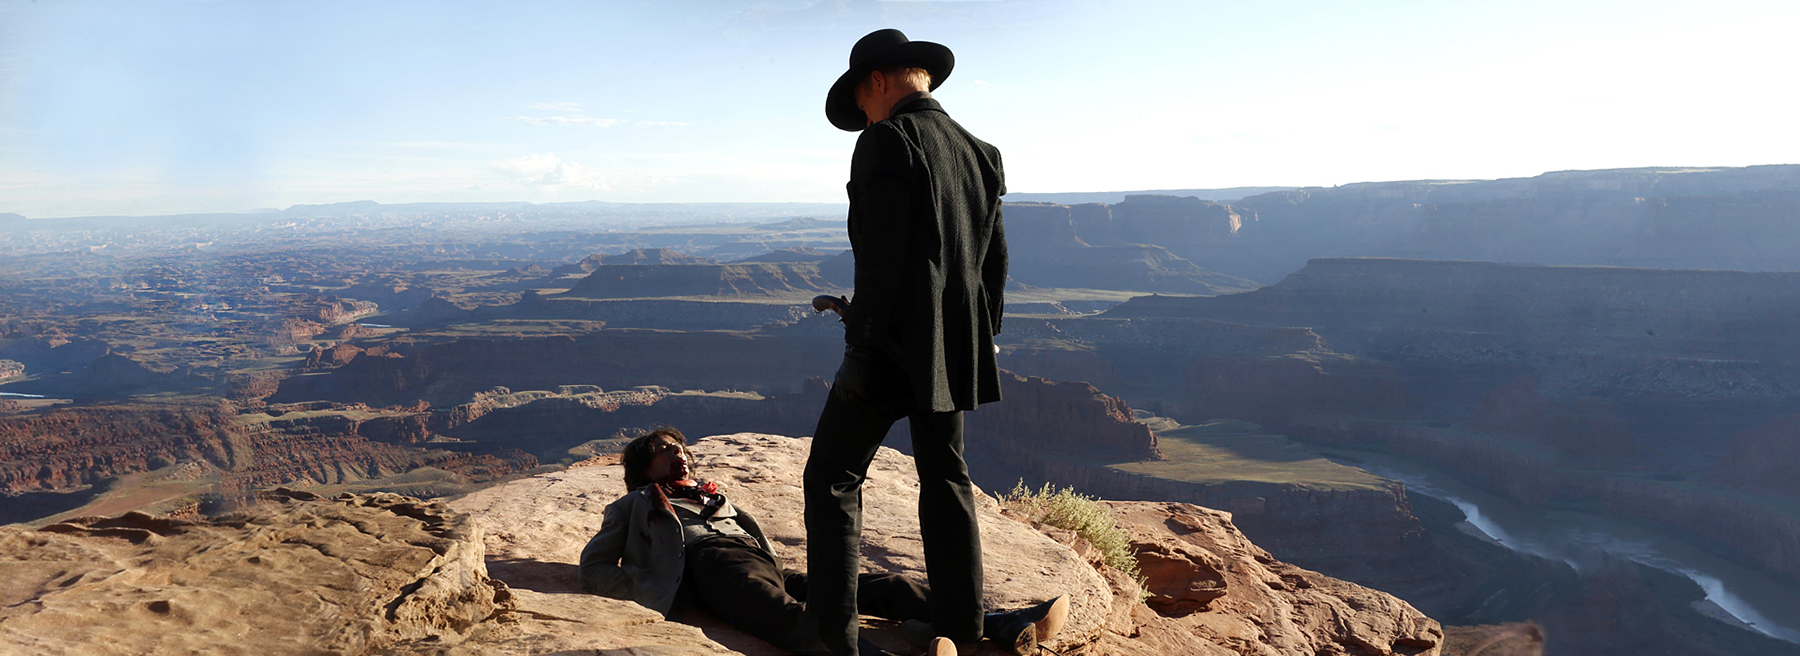 hbo s westworld tv series is filming again new casting